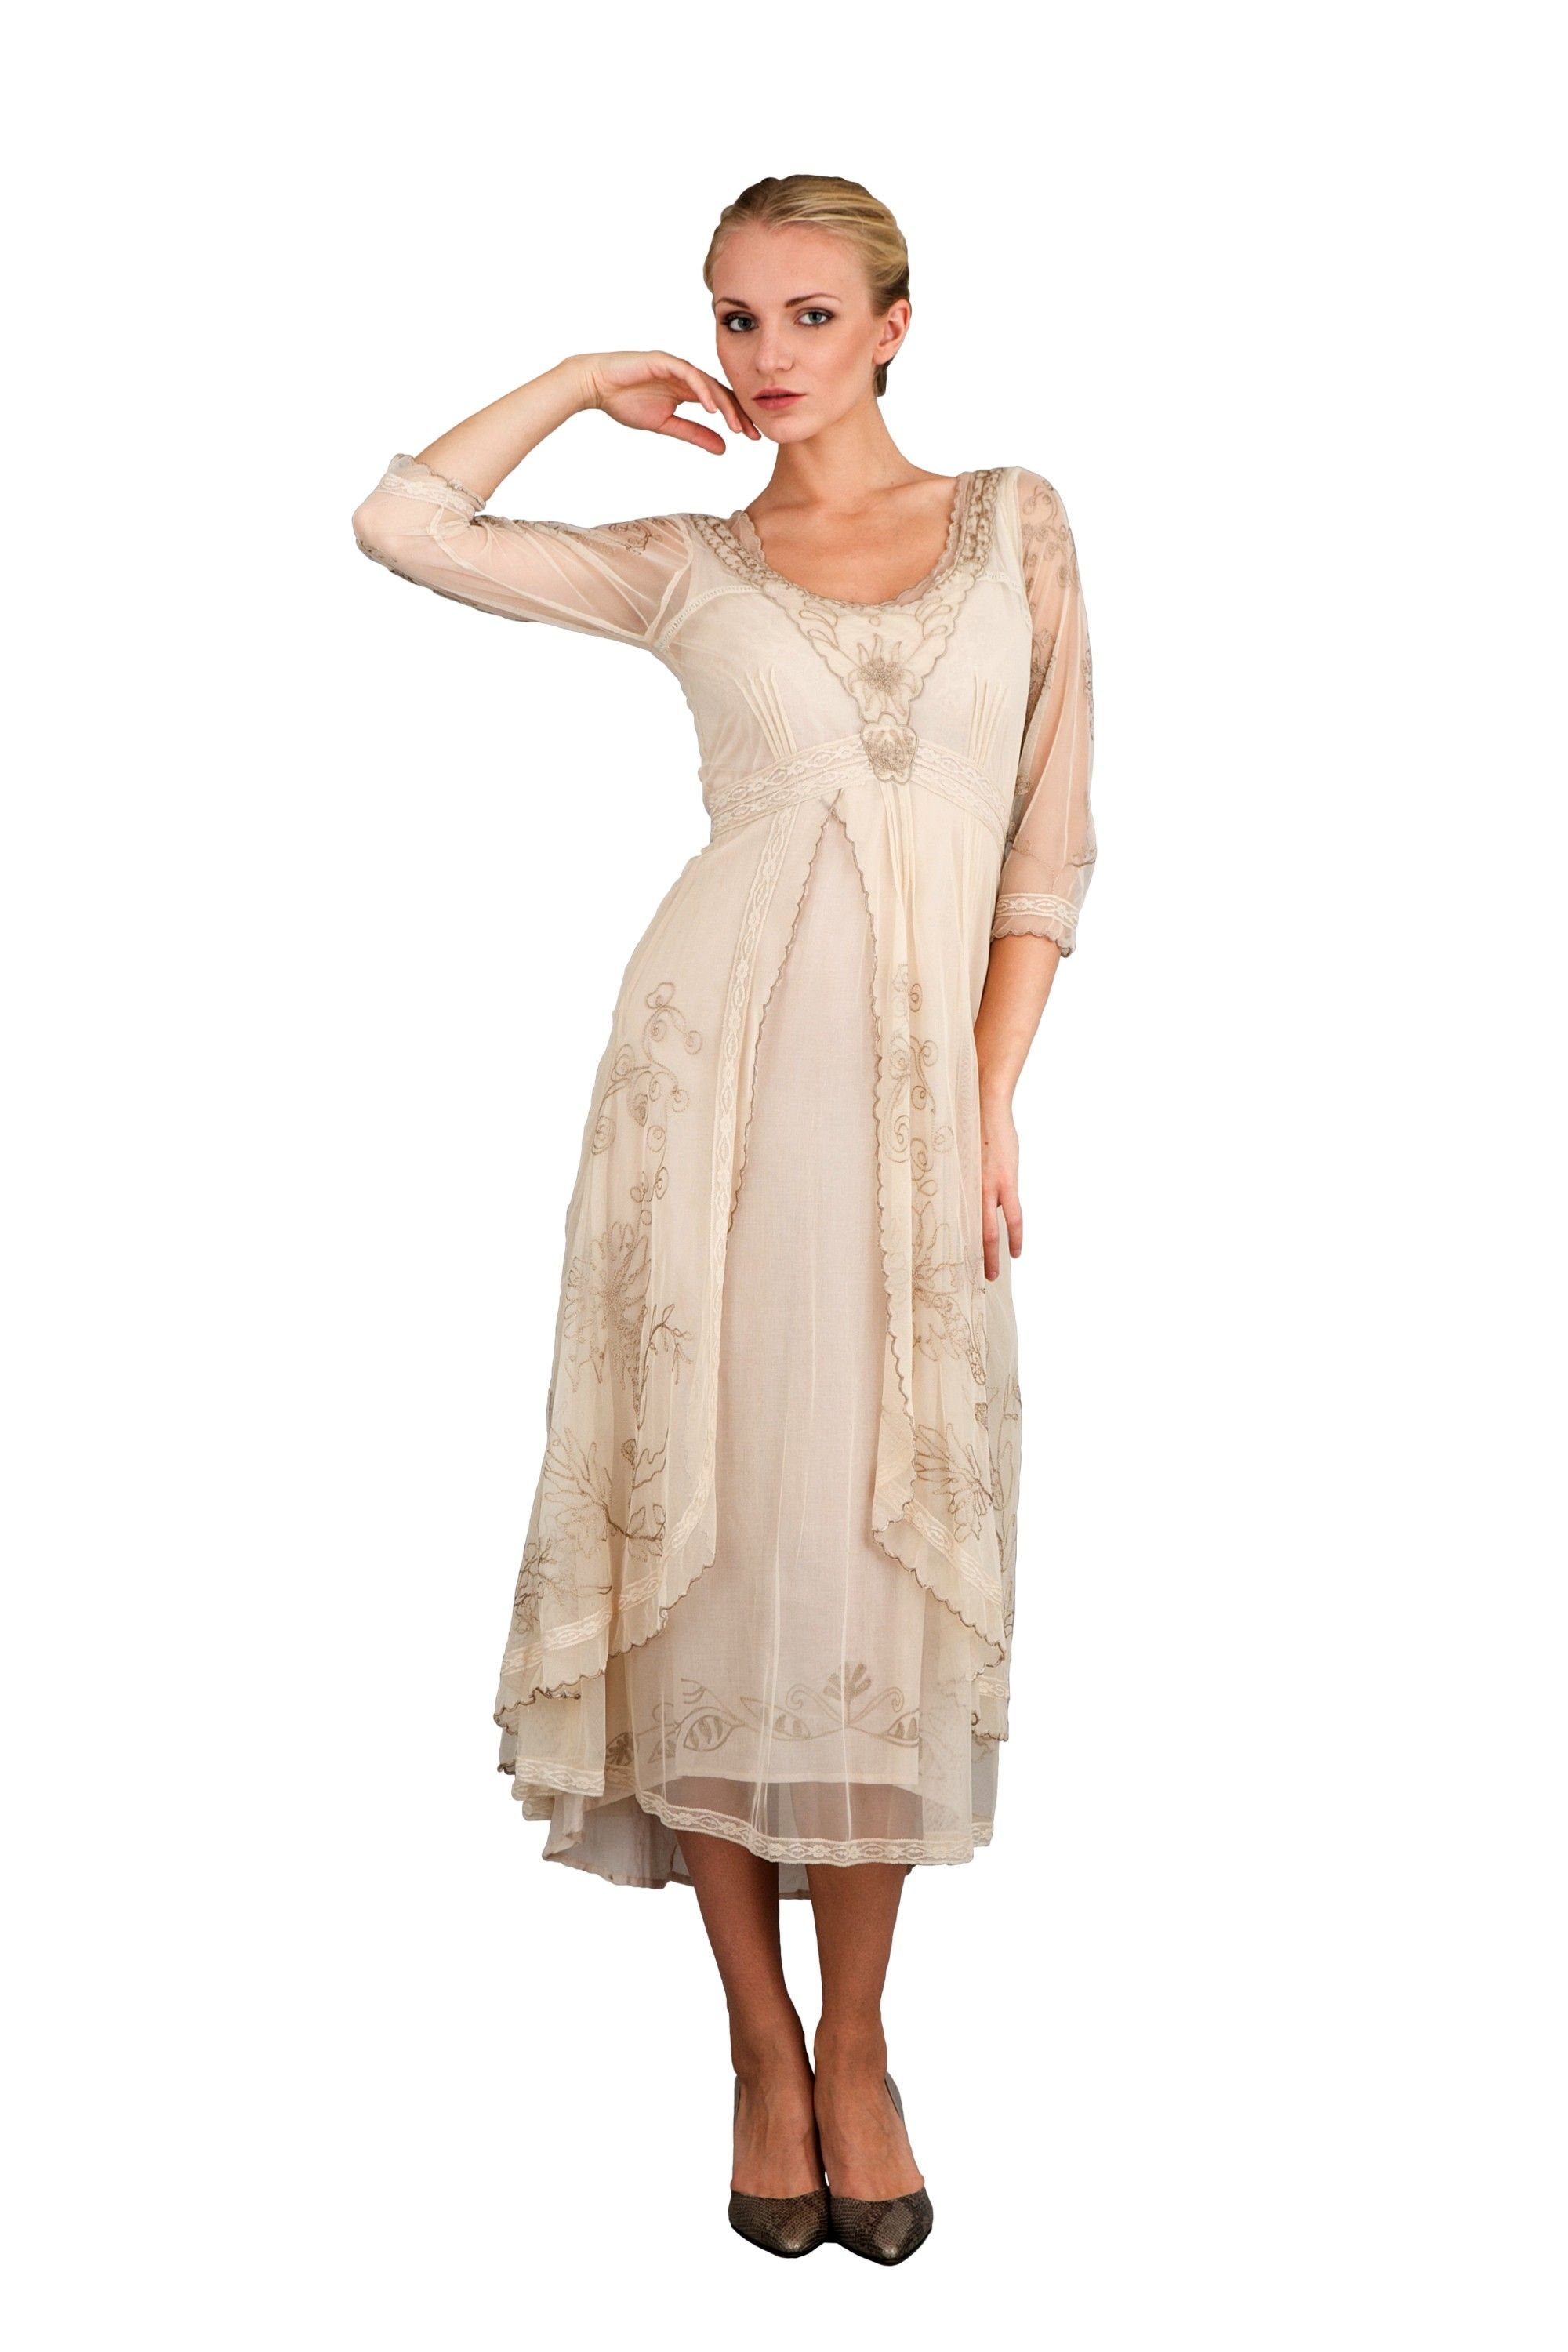 Downton Abbey Tea Party Gown in Pearl by Nataya | Vintage style ...